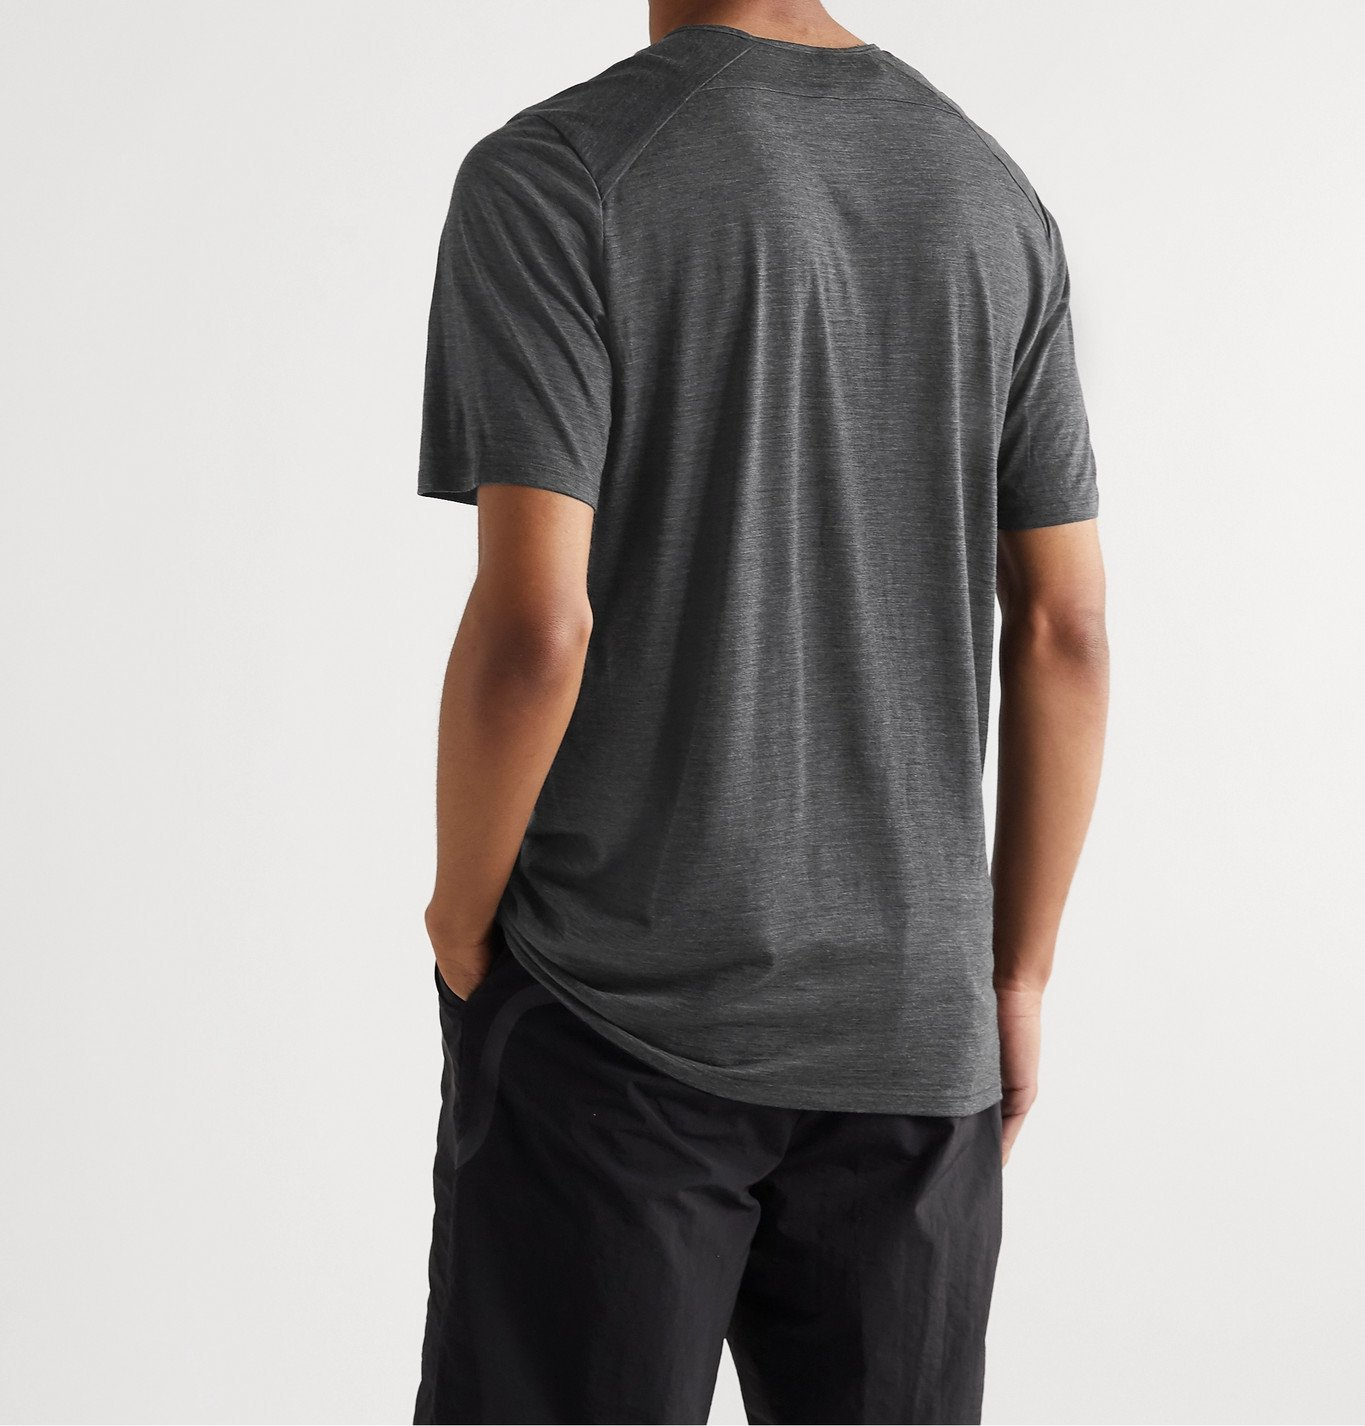 Veilance - Frame Wool and Nylon-Blend Jersey T-Shirt - Gray